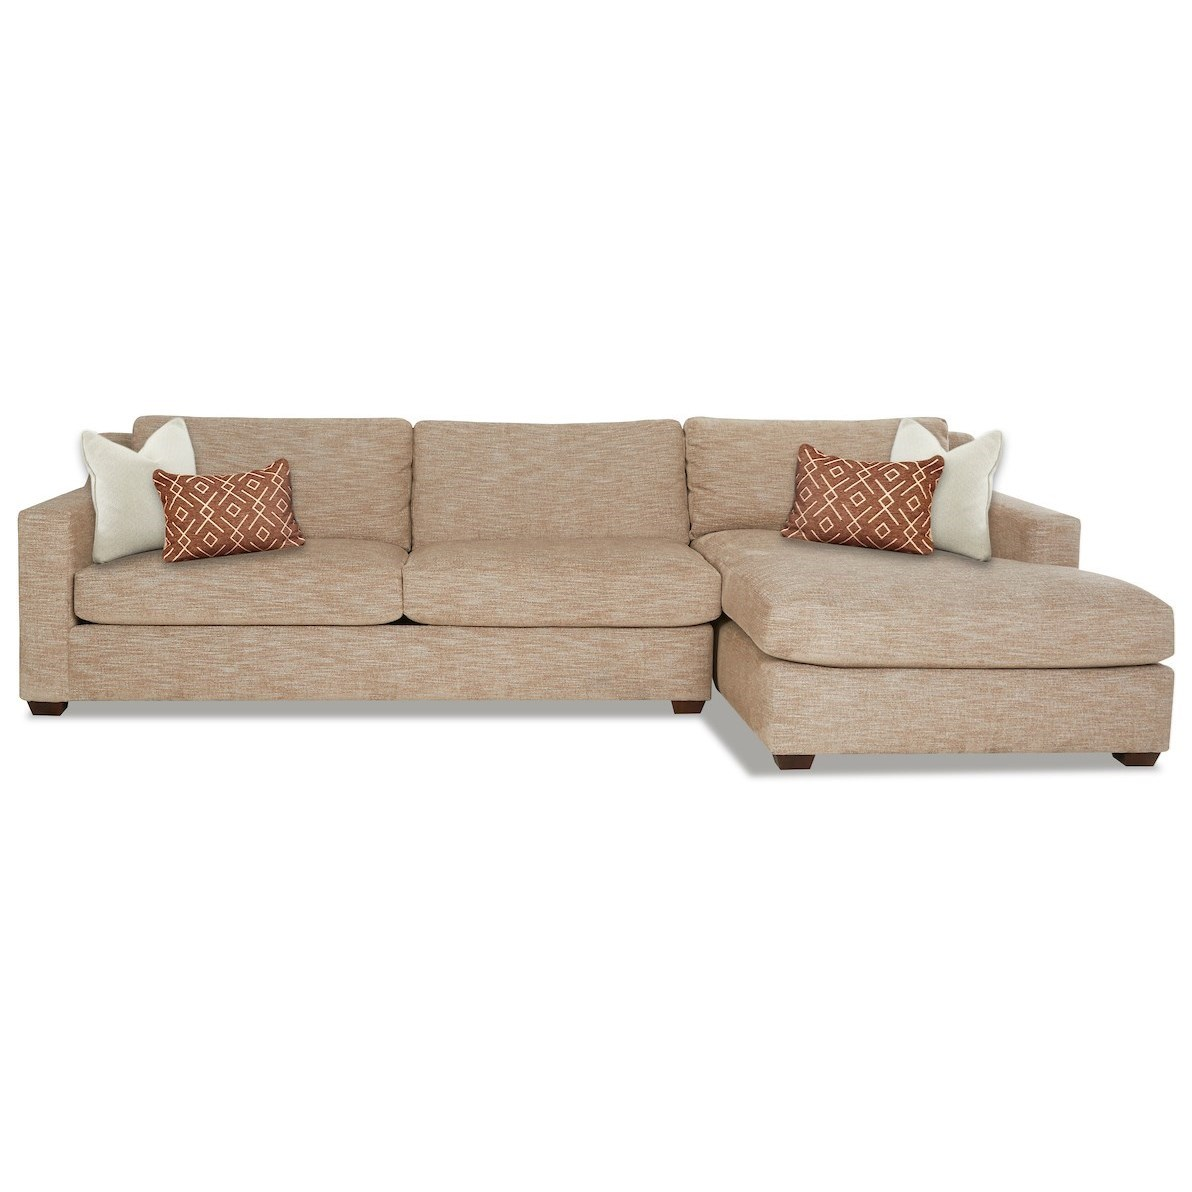 Novato 3-Seat Sectional Sofa w/ RAF Chaise by Klaussner at Northeast Factory Direct